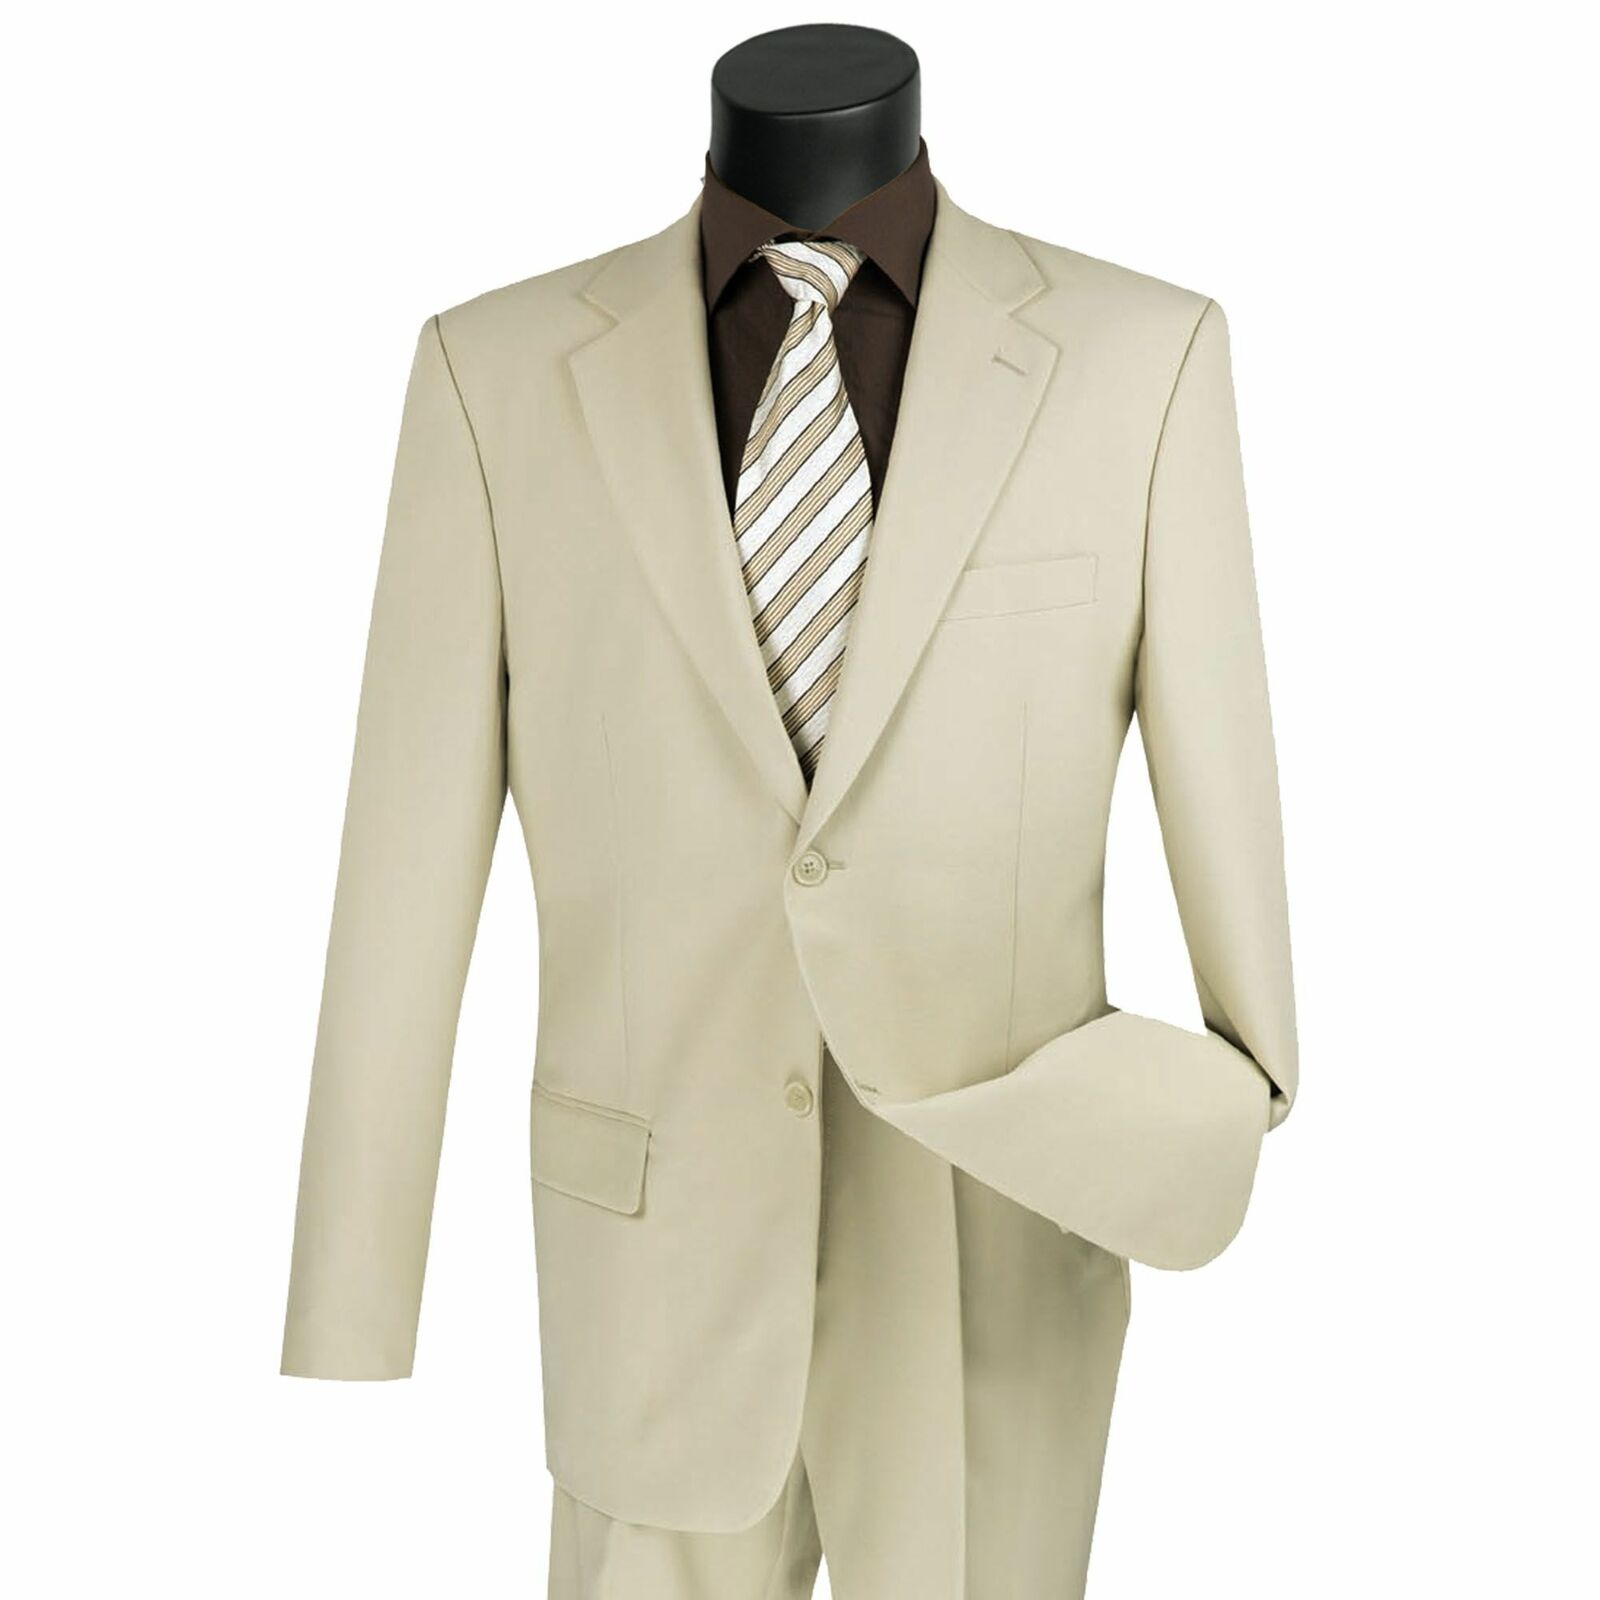 Lucci Men's Beige 2 Button Classic Fit Poplin Polyester Suit